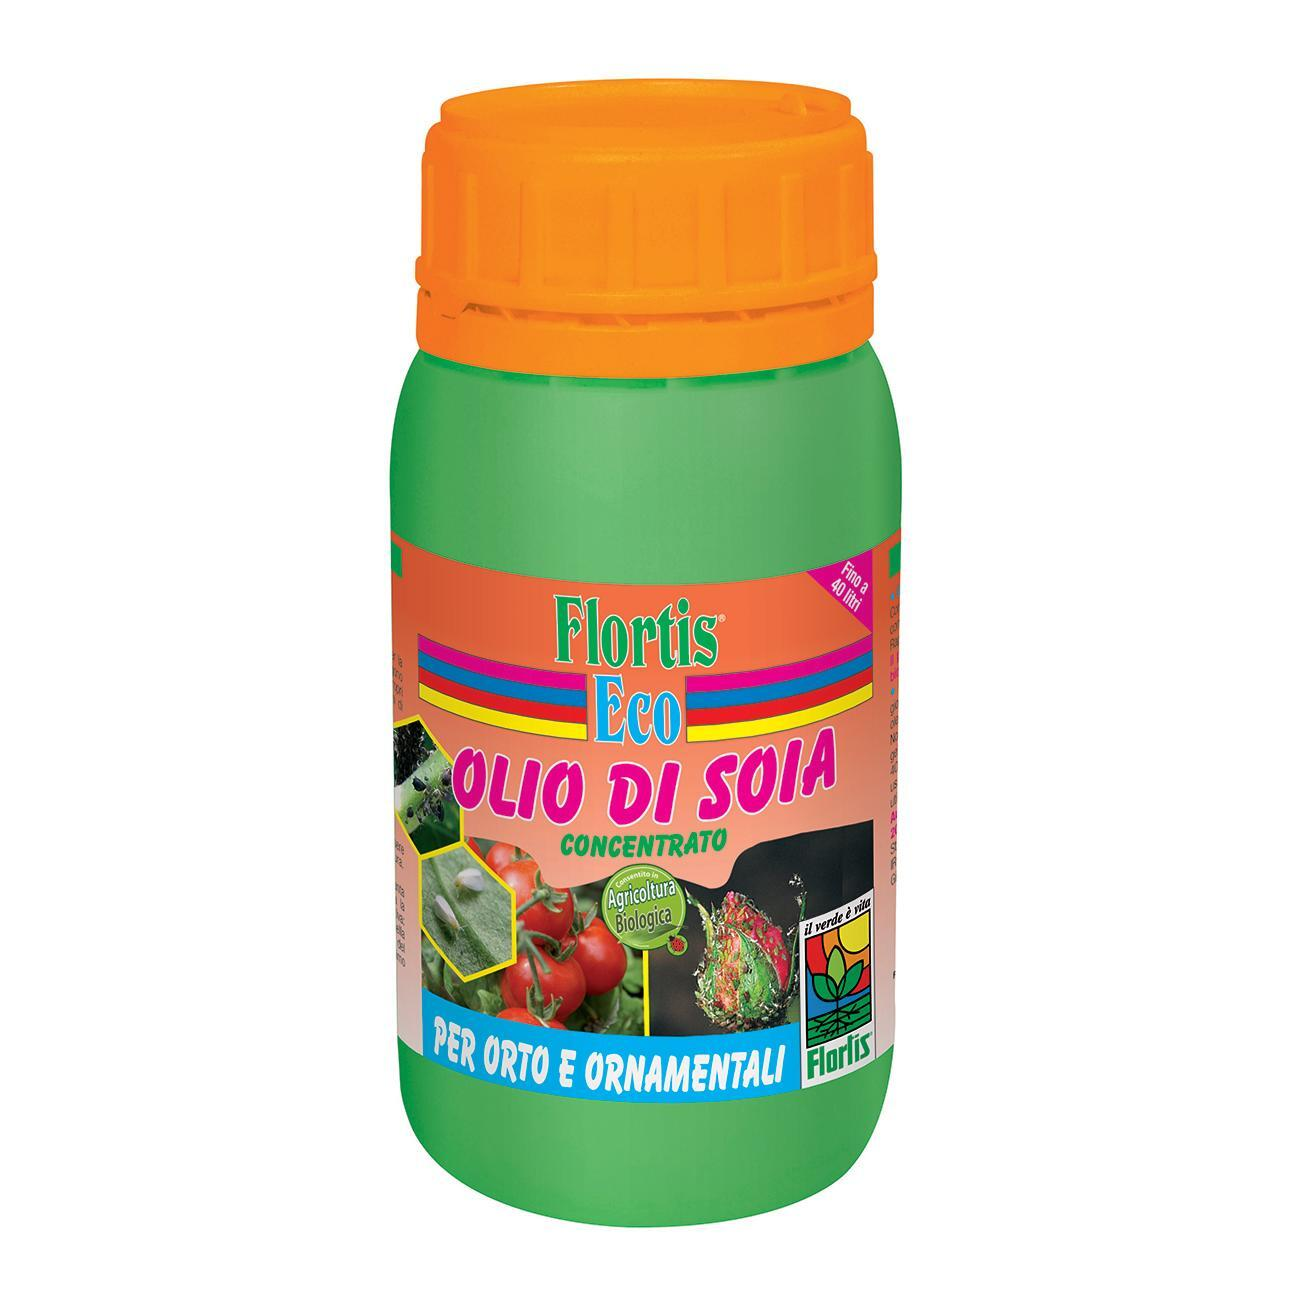 Repellente FLORTIS olio di soia concentrato 200 ml - 1